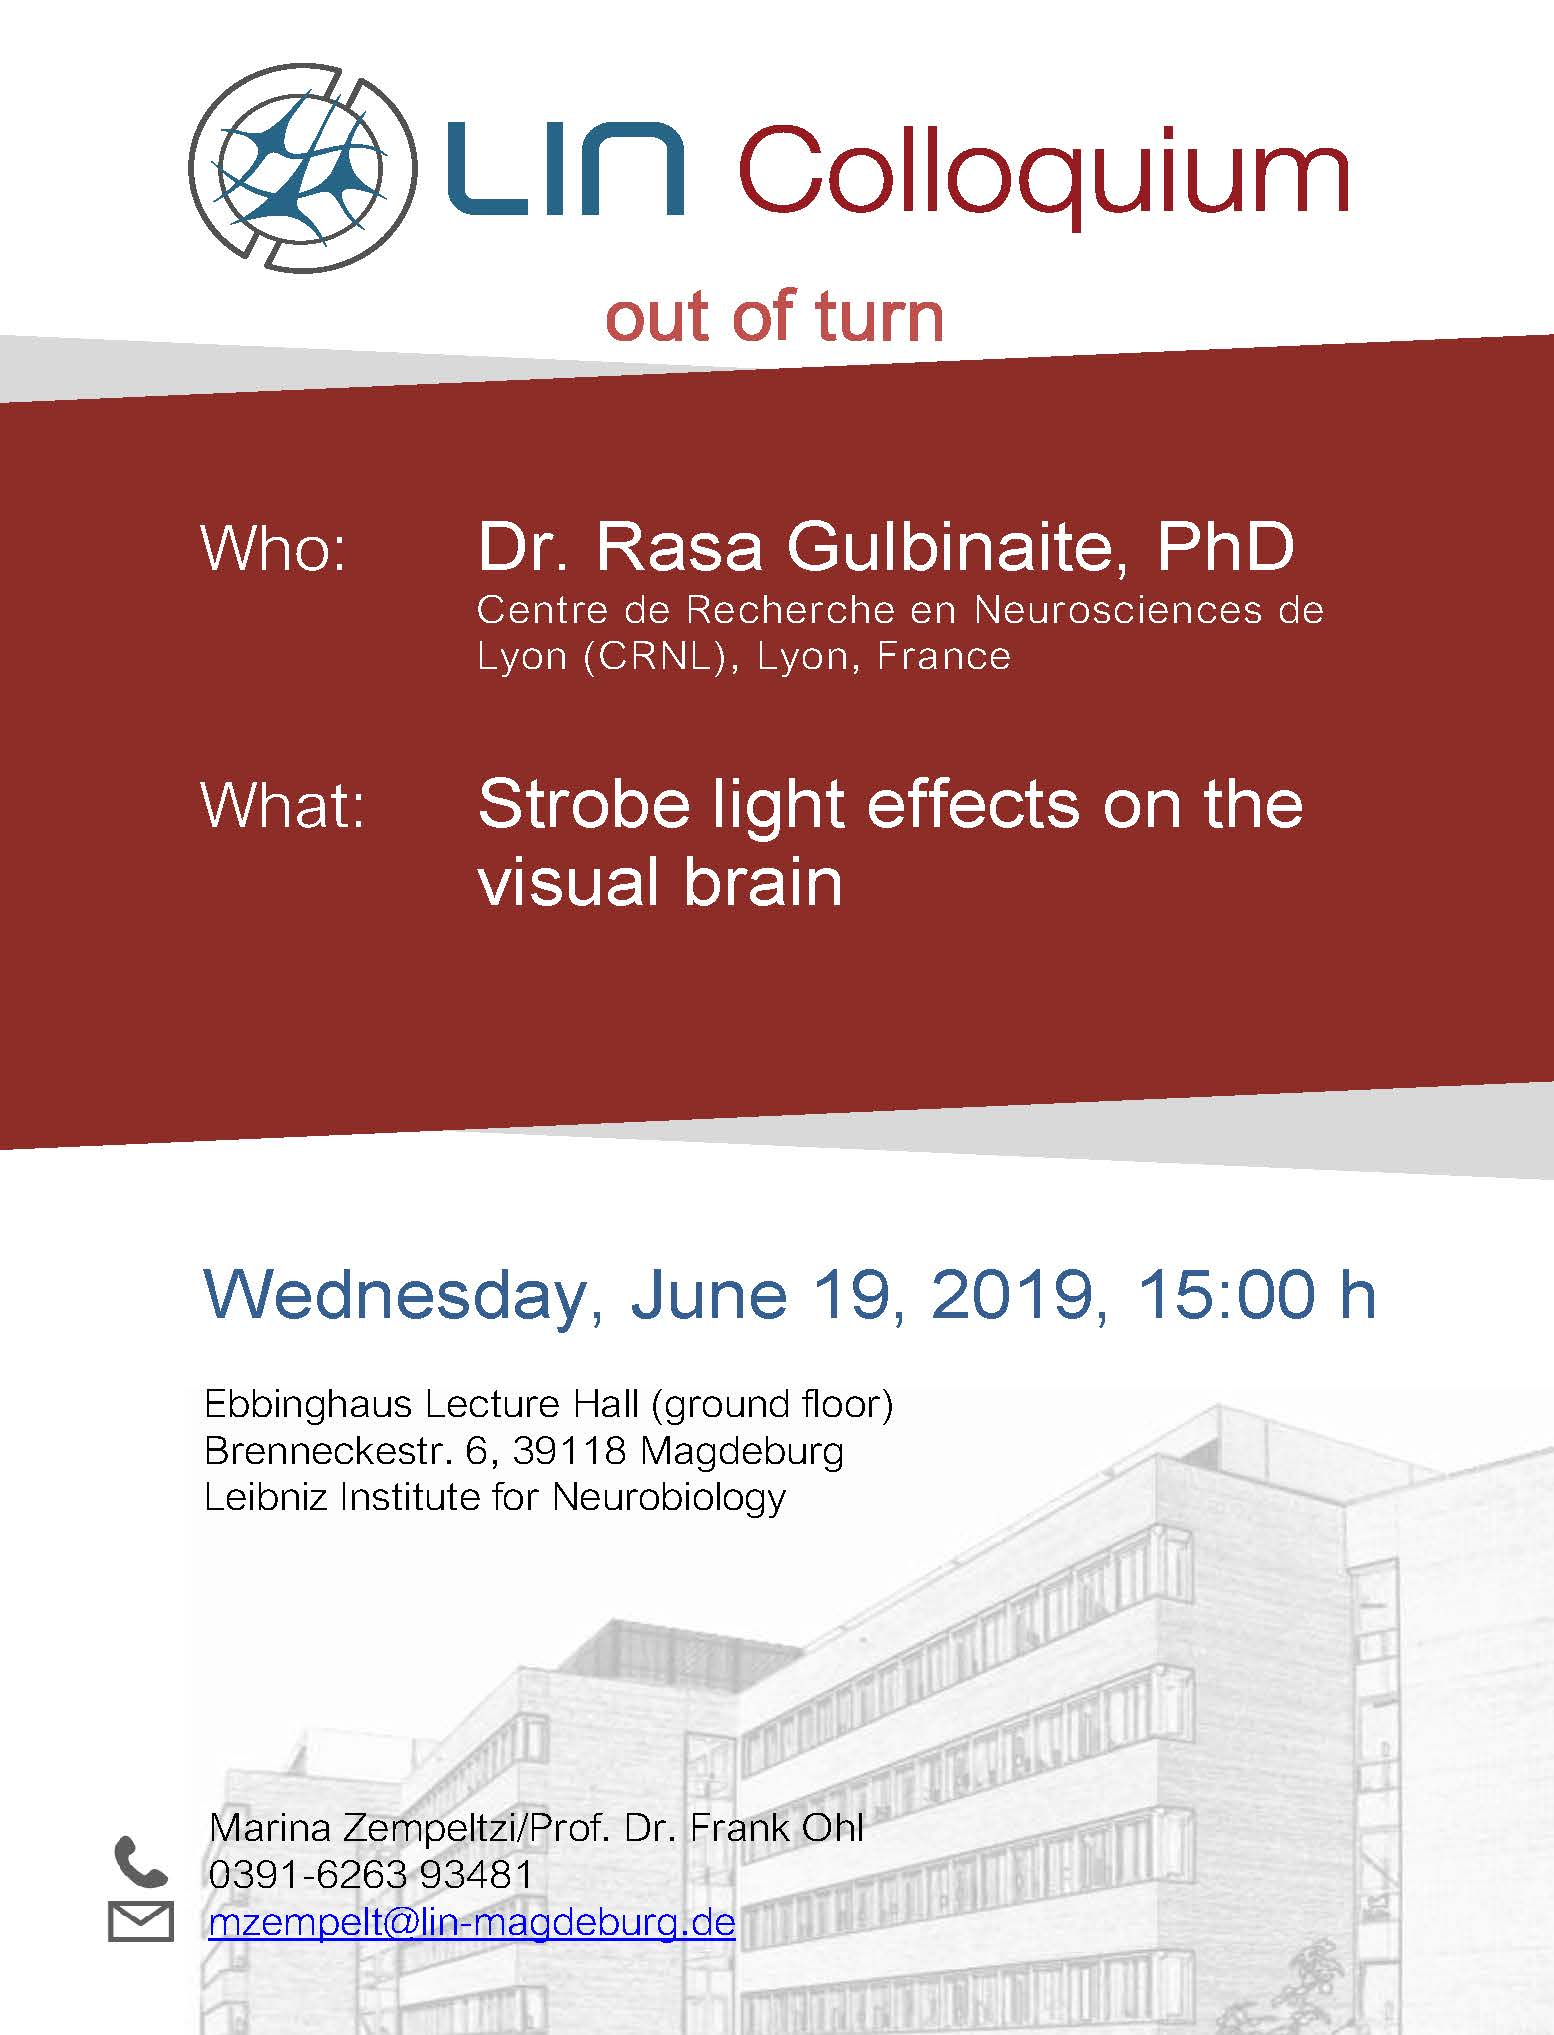 LIN colloquium: Strobe light effects on the visual brain @ Ebbing hall, LIN